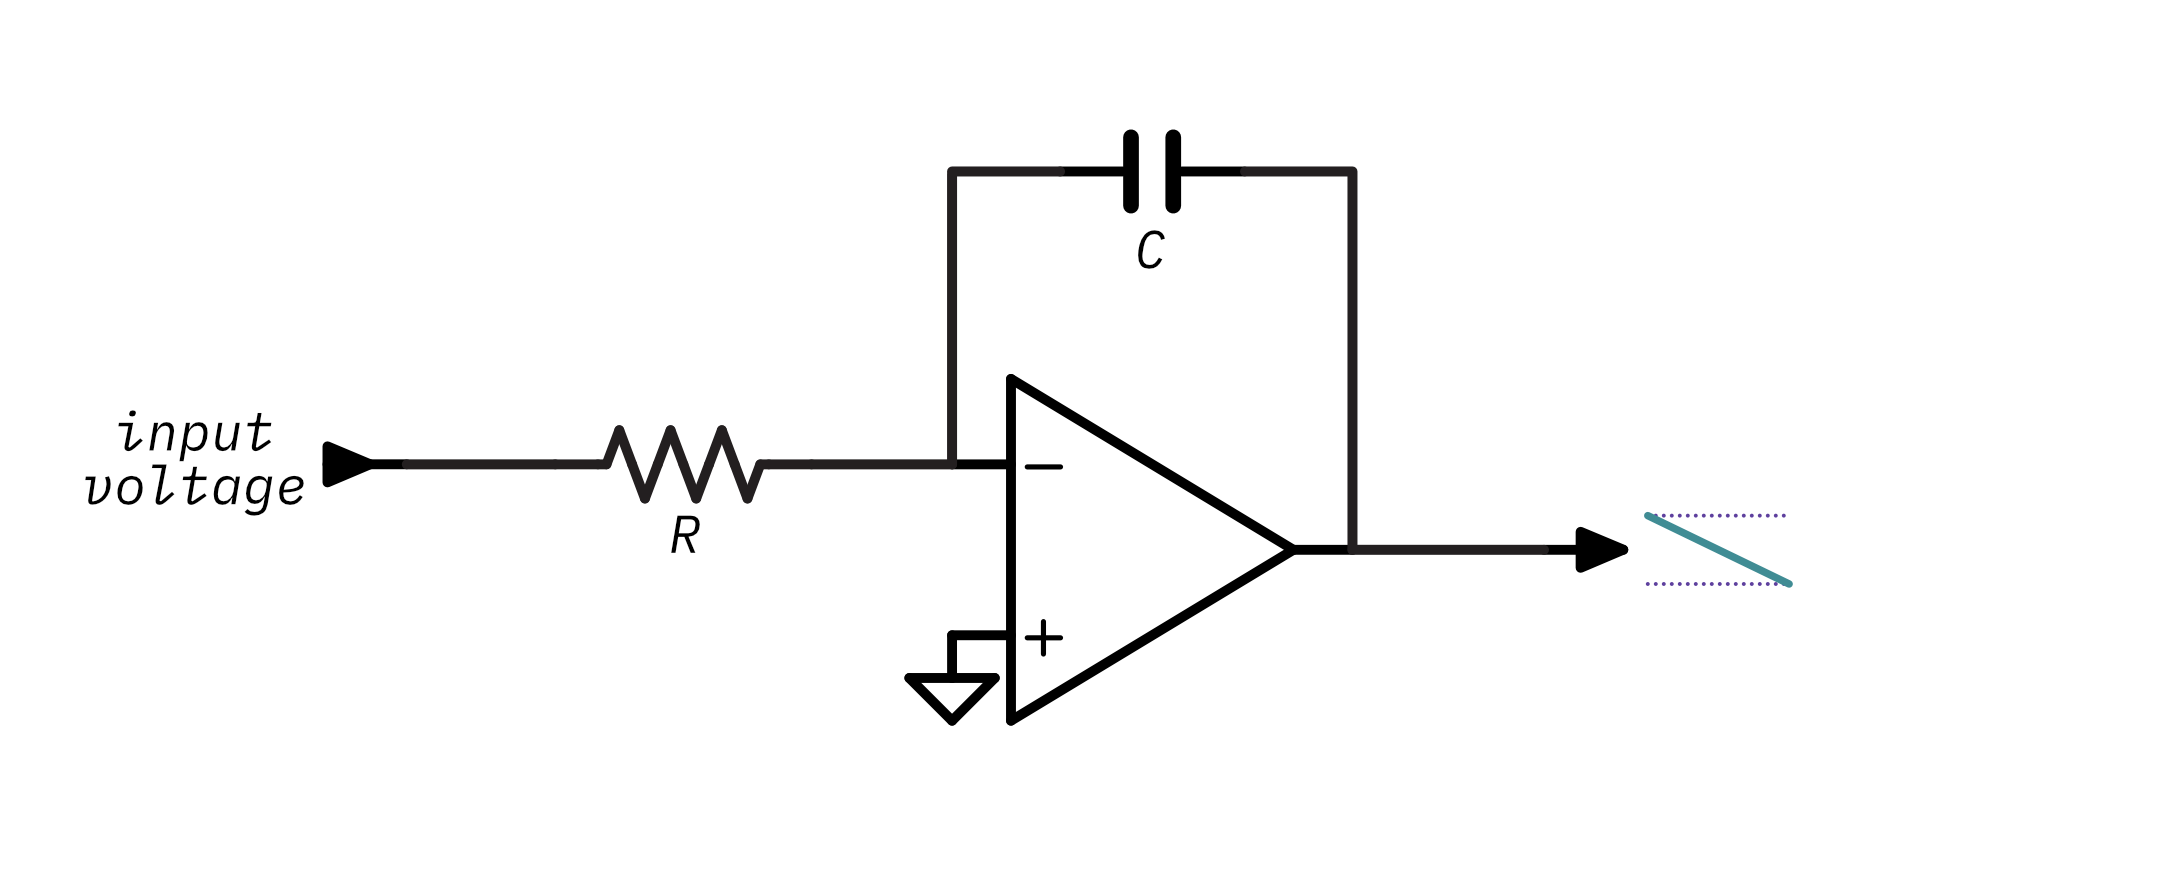 A basic op-amp integrator circuit